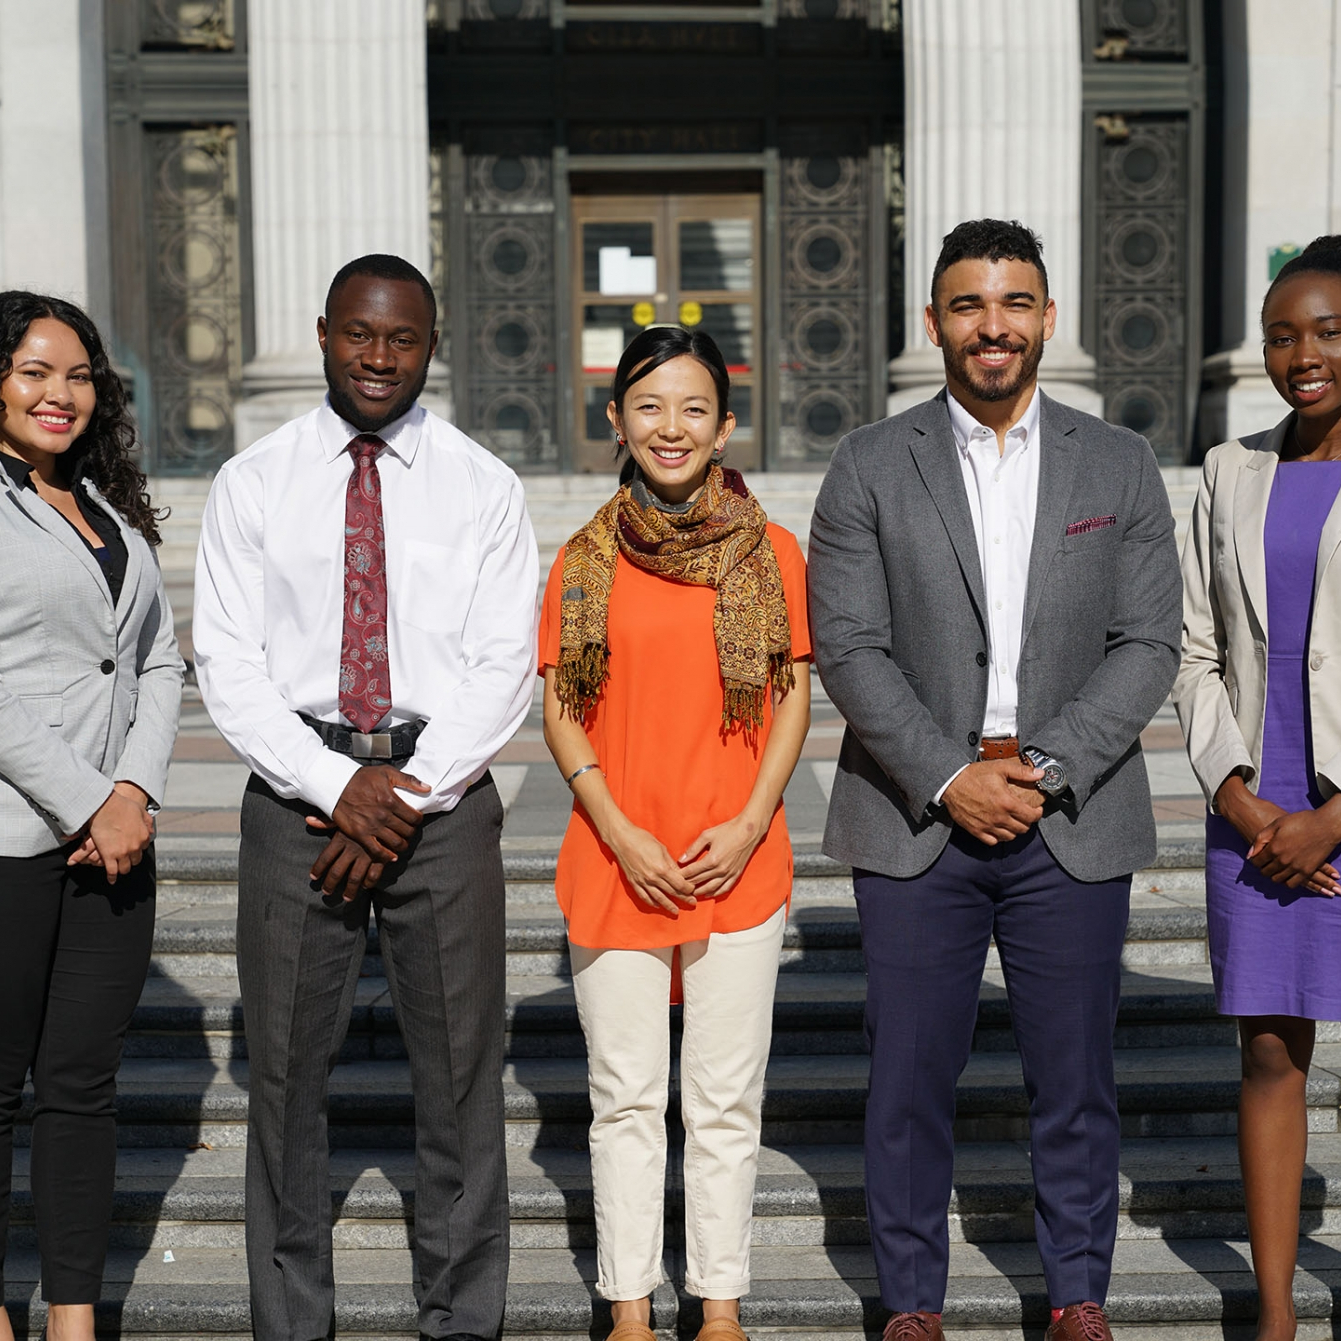 greenlining-leadership-academy-fellows2020-header